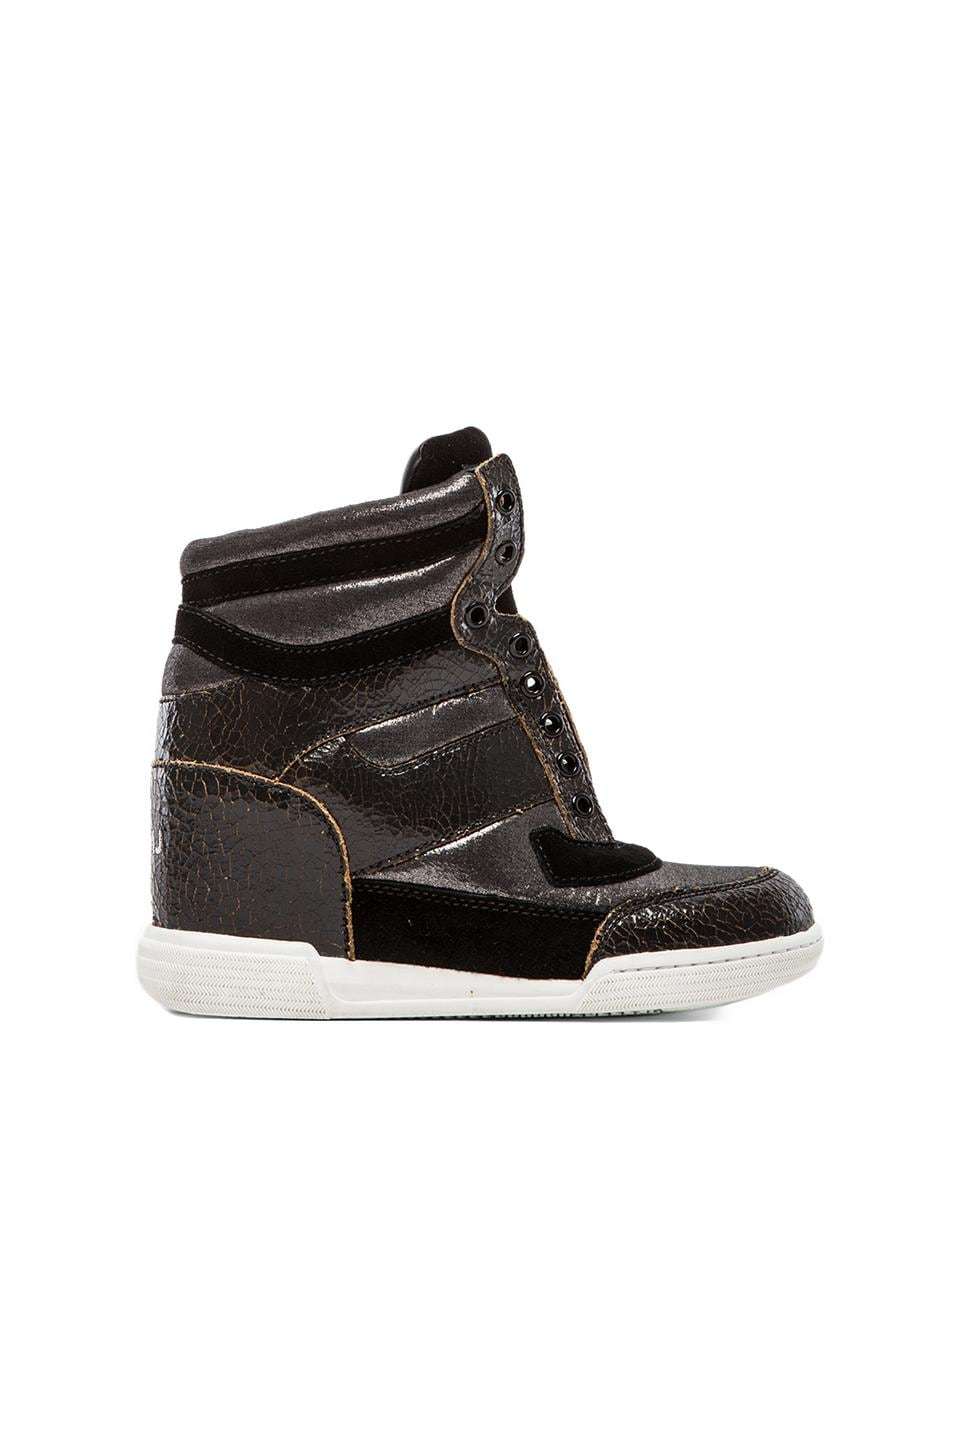 Marc by Marc Jacobs Sneaker Wedge in Gunmetal & Black